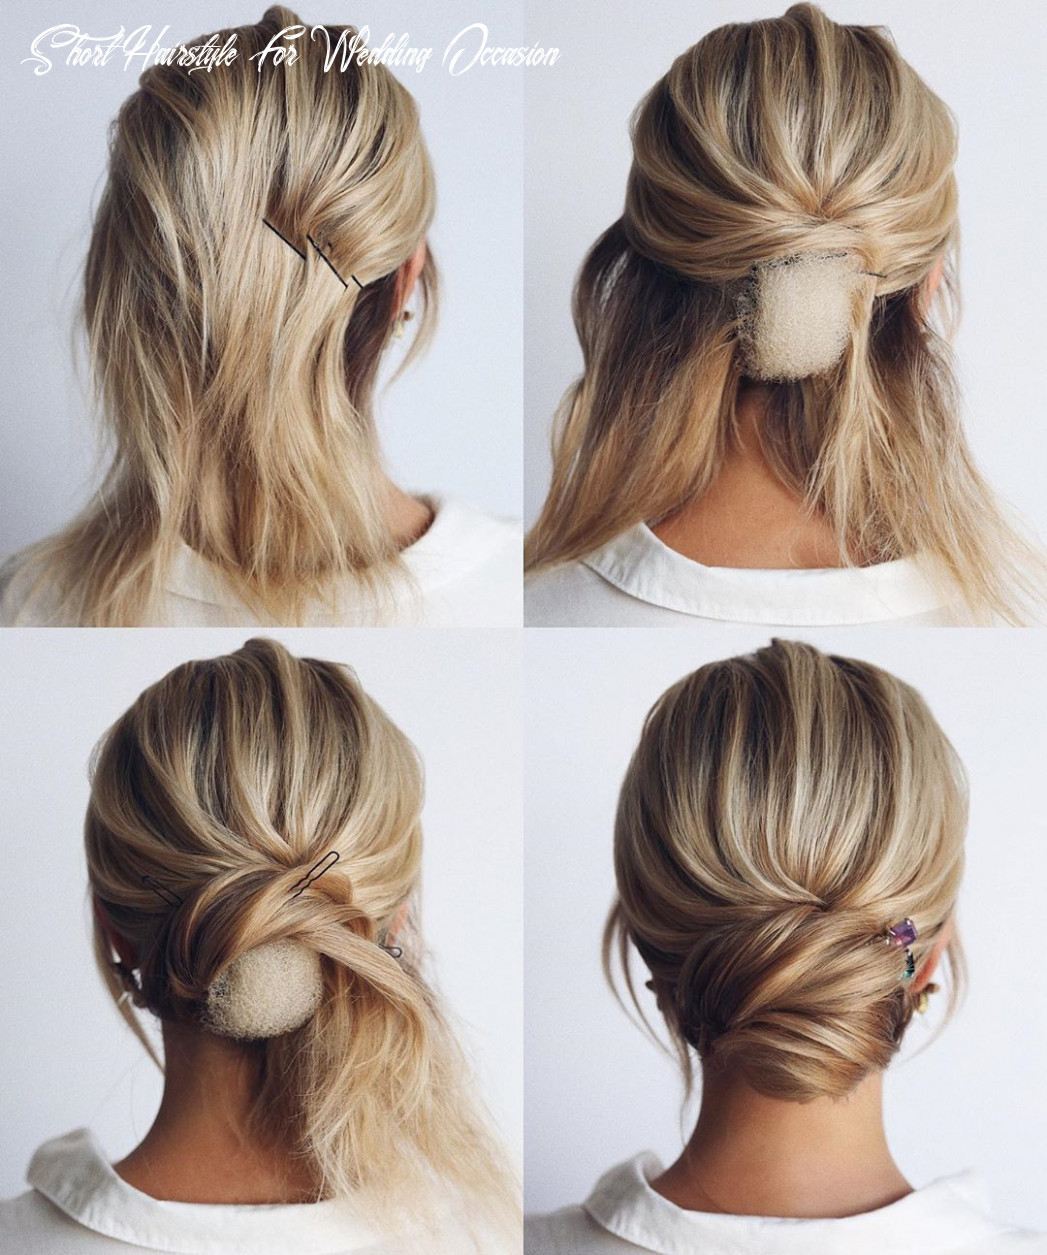 8 easy and cute hair tutorials for any occasion | short wedding